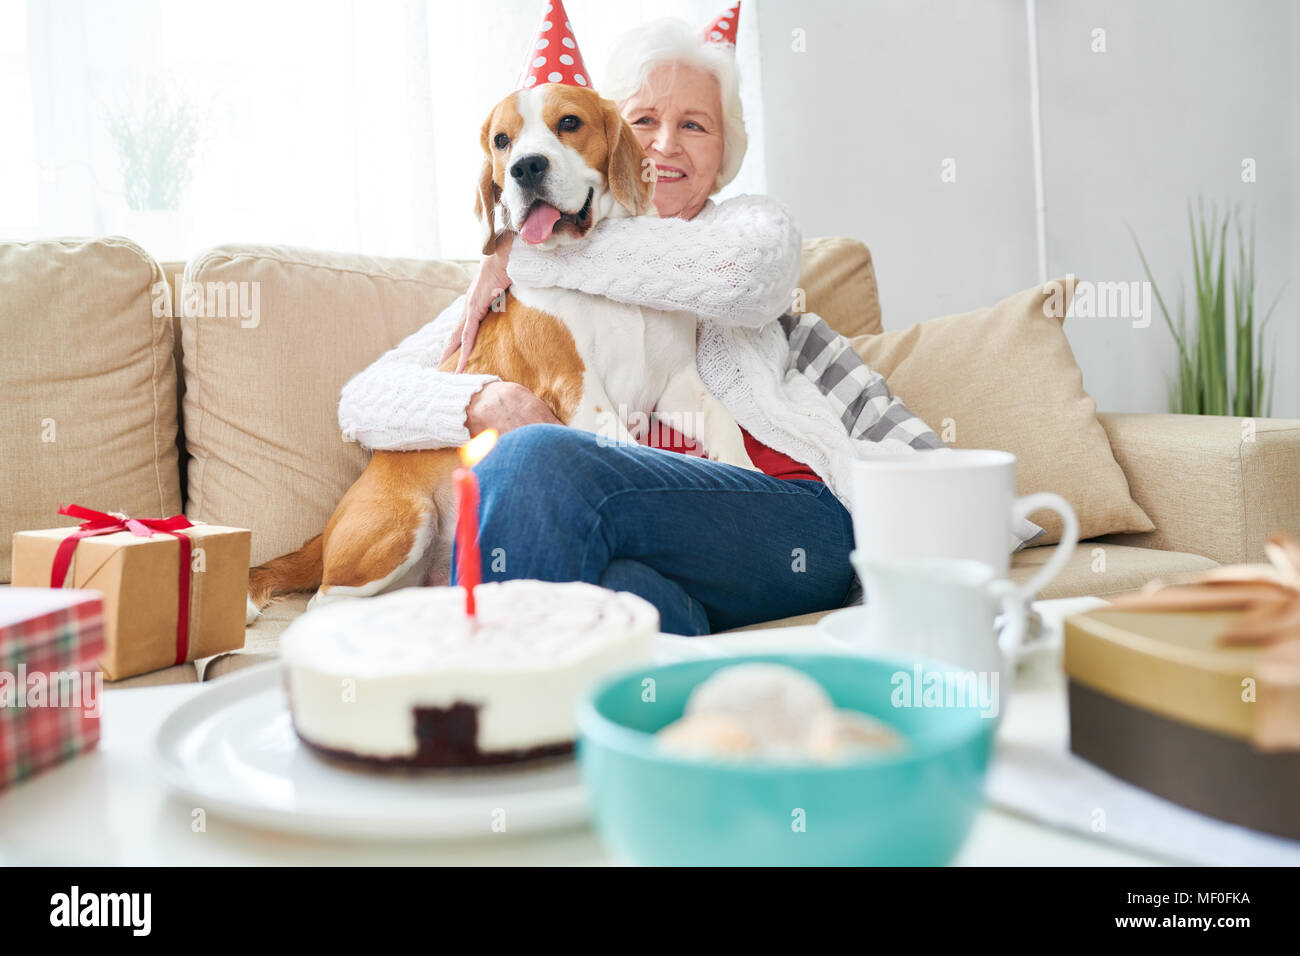 Excited senior owner celebrating dogs party - Stock Image